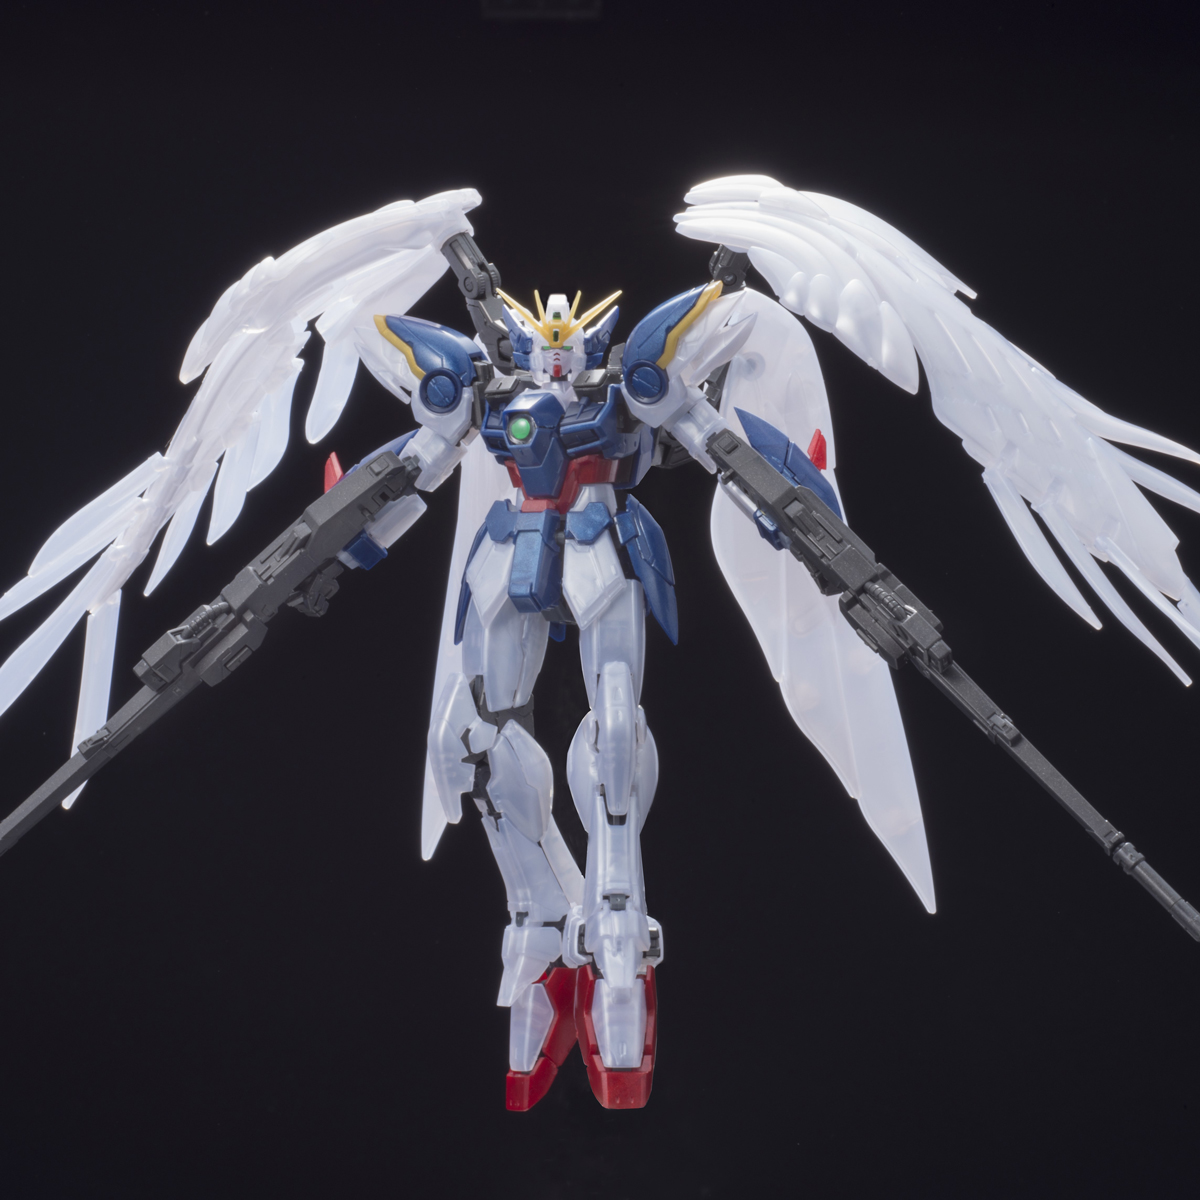 RG 1/144 WING GUNDAM ZERO EW PEARL GLOSS Ver.[Sep 2020 Delivery]